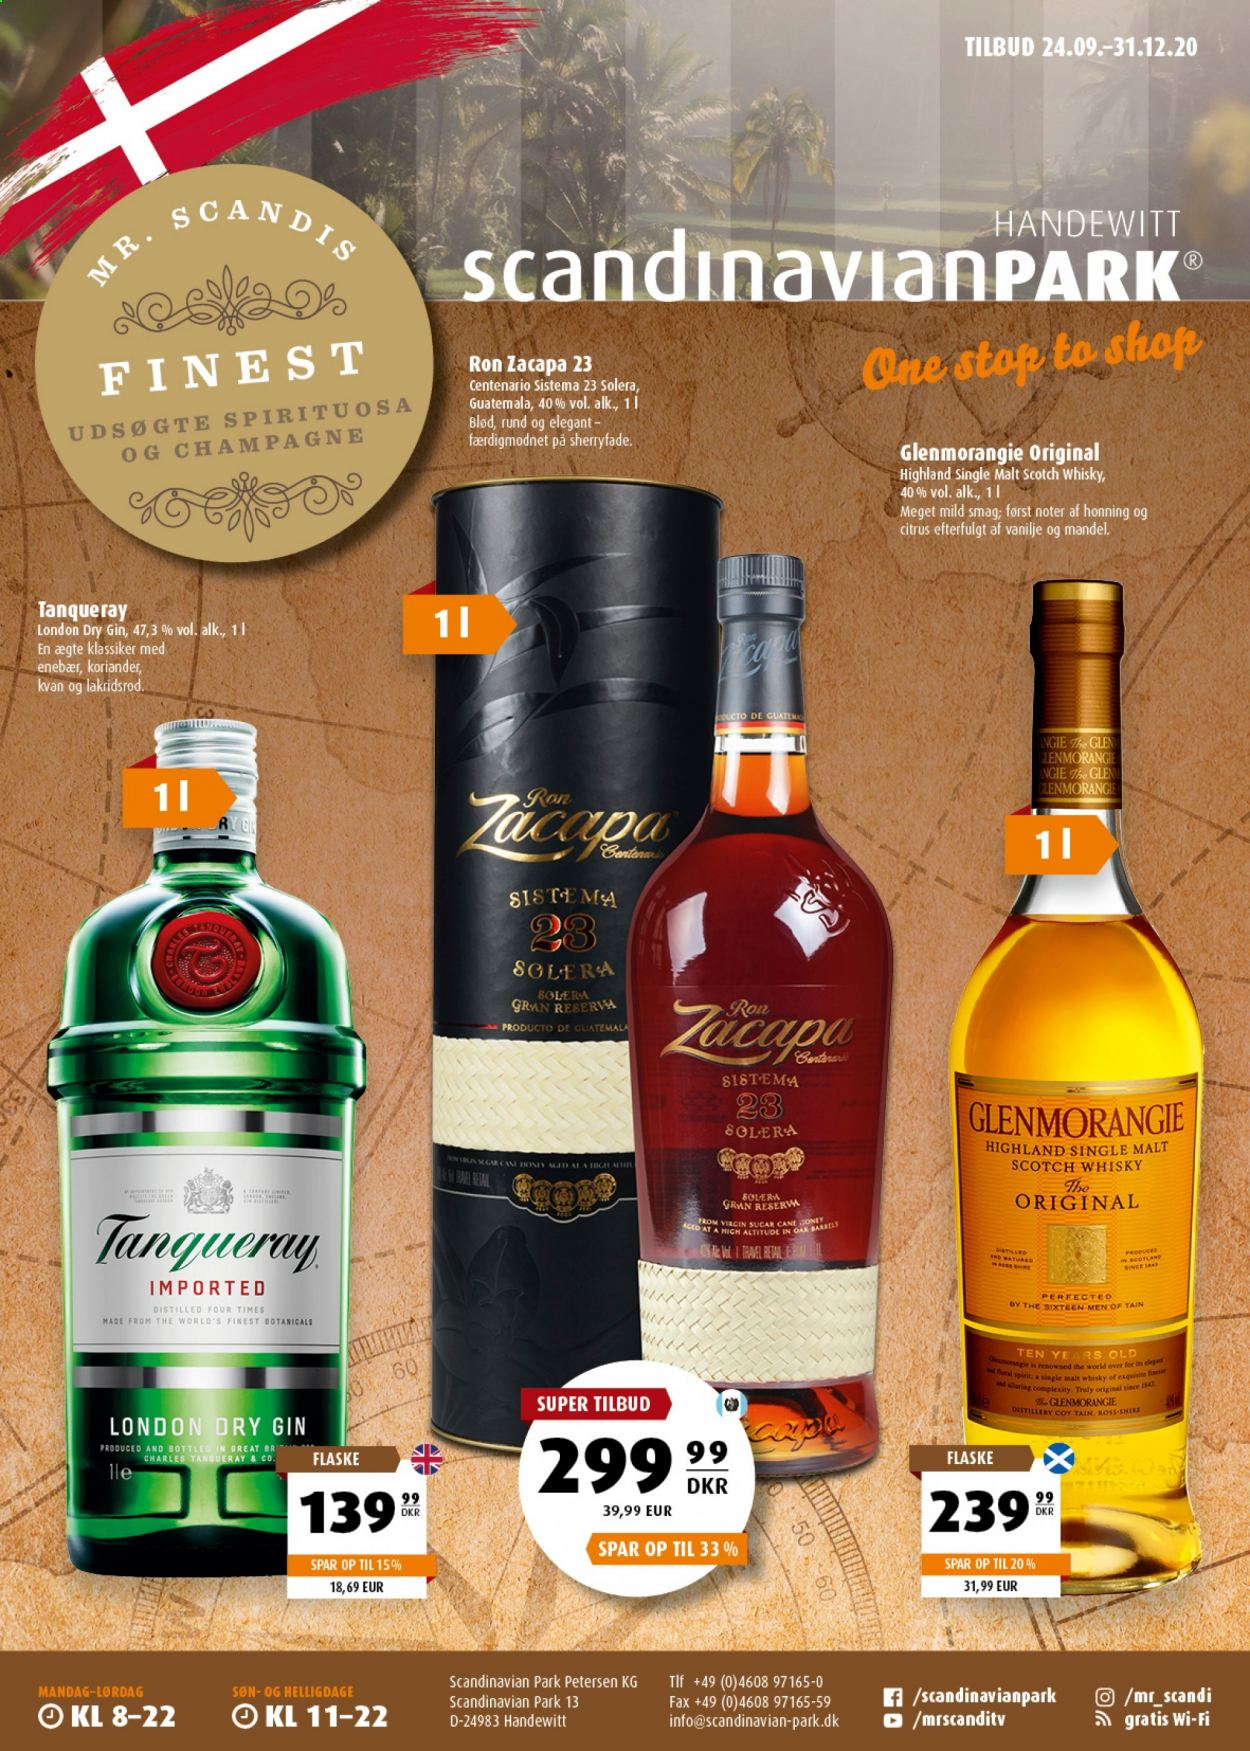 Scandinavian Park tilbud  - 24.09.2020 - 31.12.2020 - tilbudsprodukter - and, gin, honning, champagne, park, rom, scotch whisky, single malt, the, whisky, wi-fi, zacapa. Side 1.